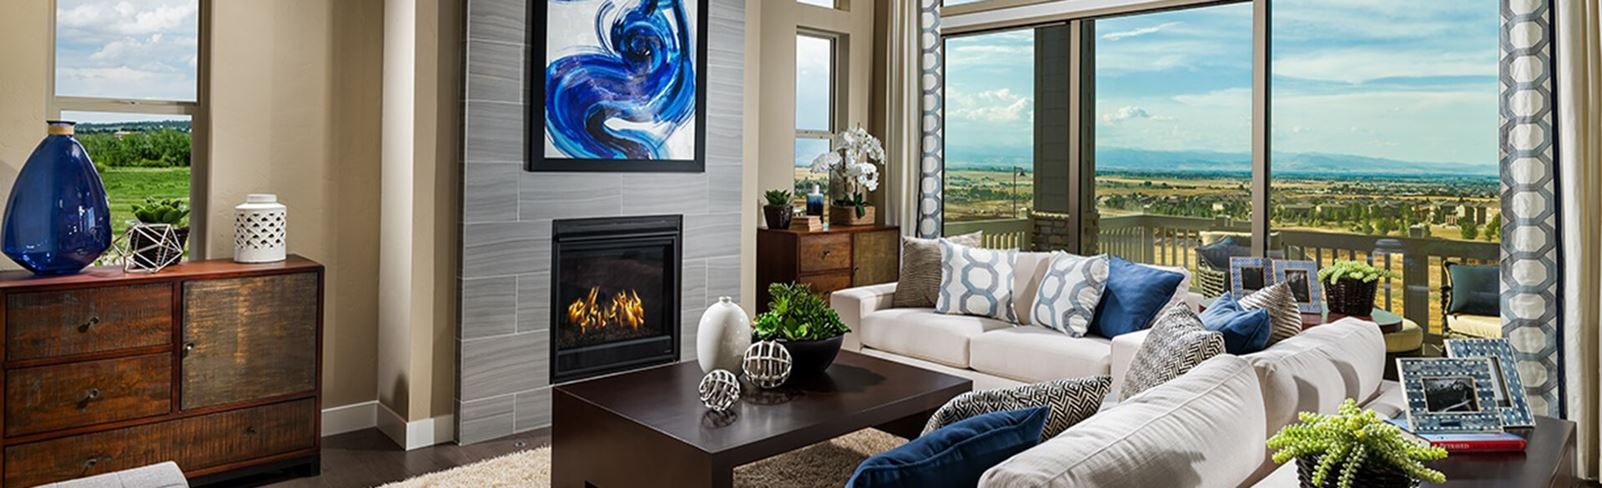 CalAtlantic Homes - New Home Builder in Anthem Broomfield, Colorado